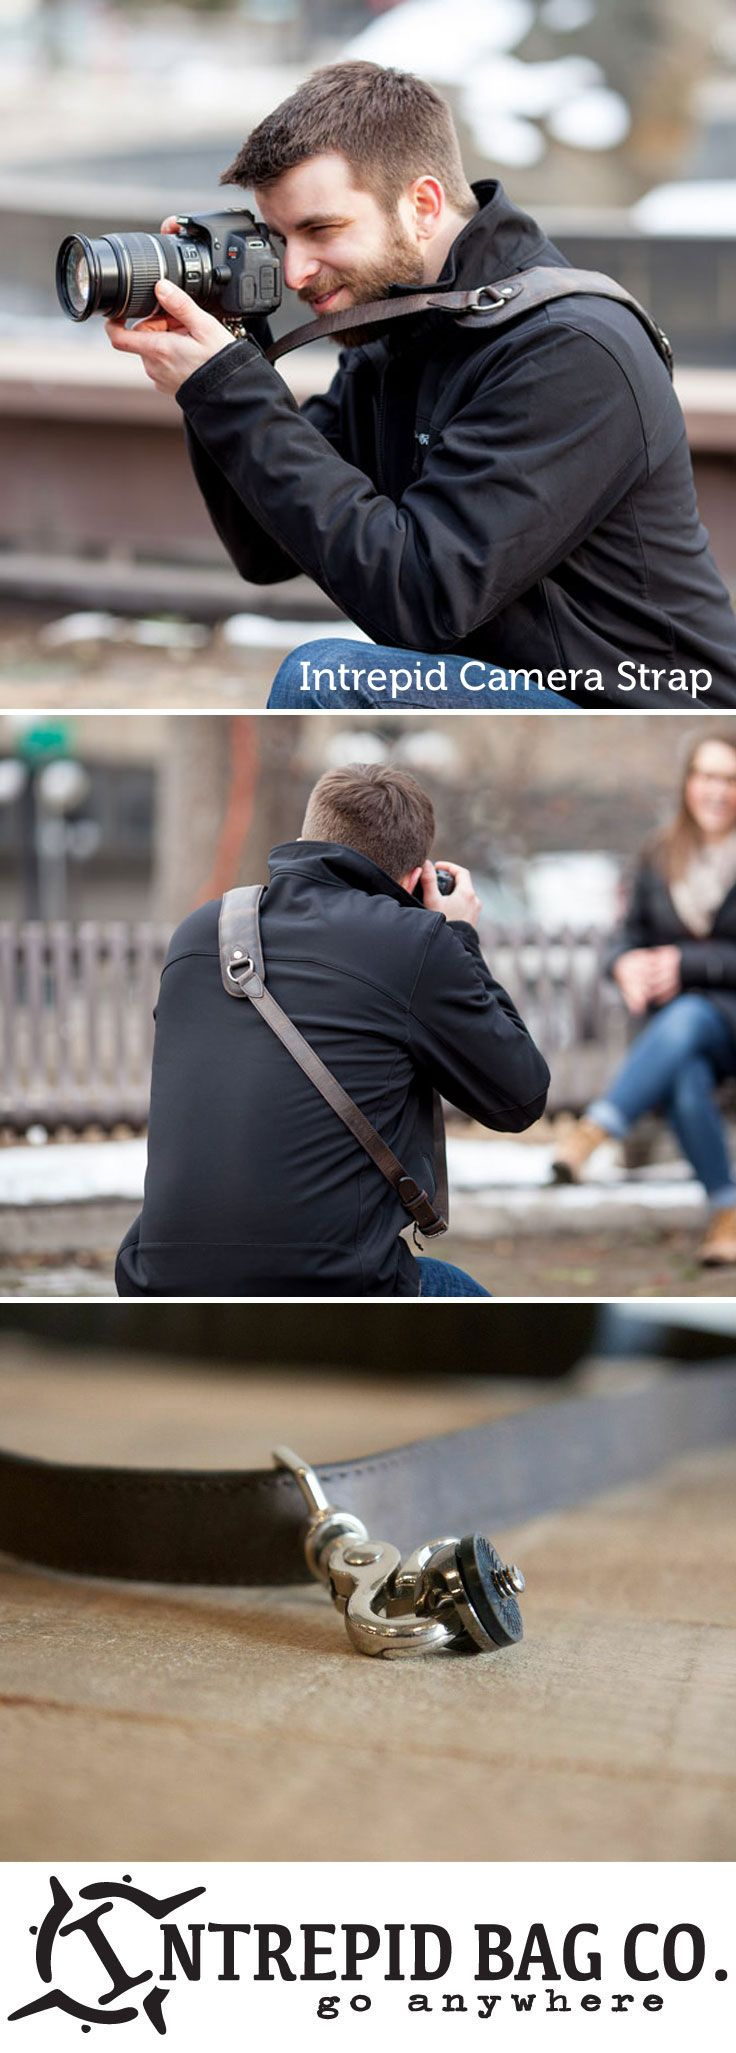 The Intrepid Cross-Body Camera Strap. The most durable and comfortable camera strap around for all your adventures. www.IntrepidBags.com